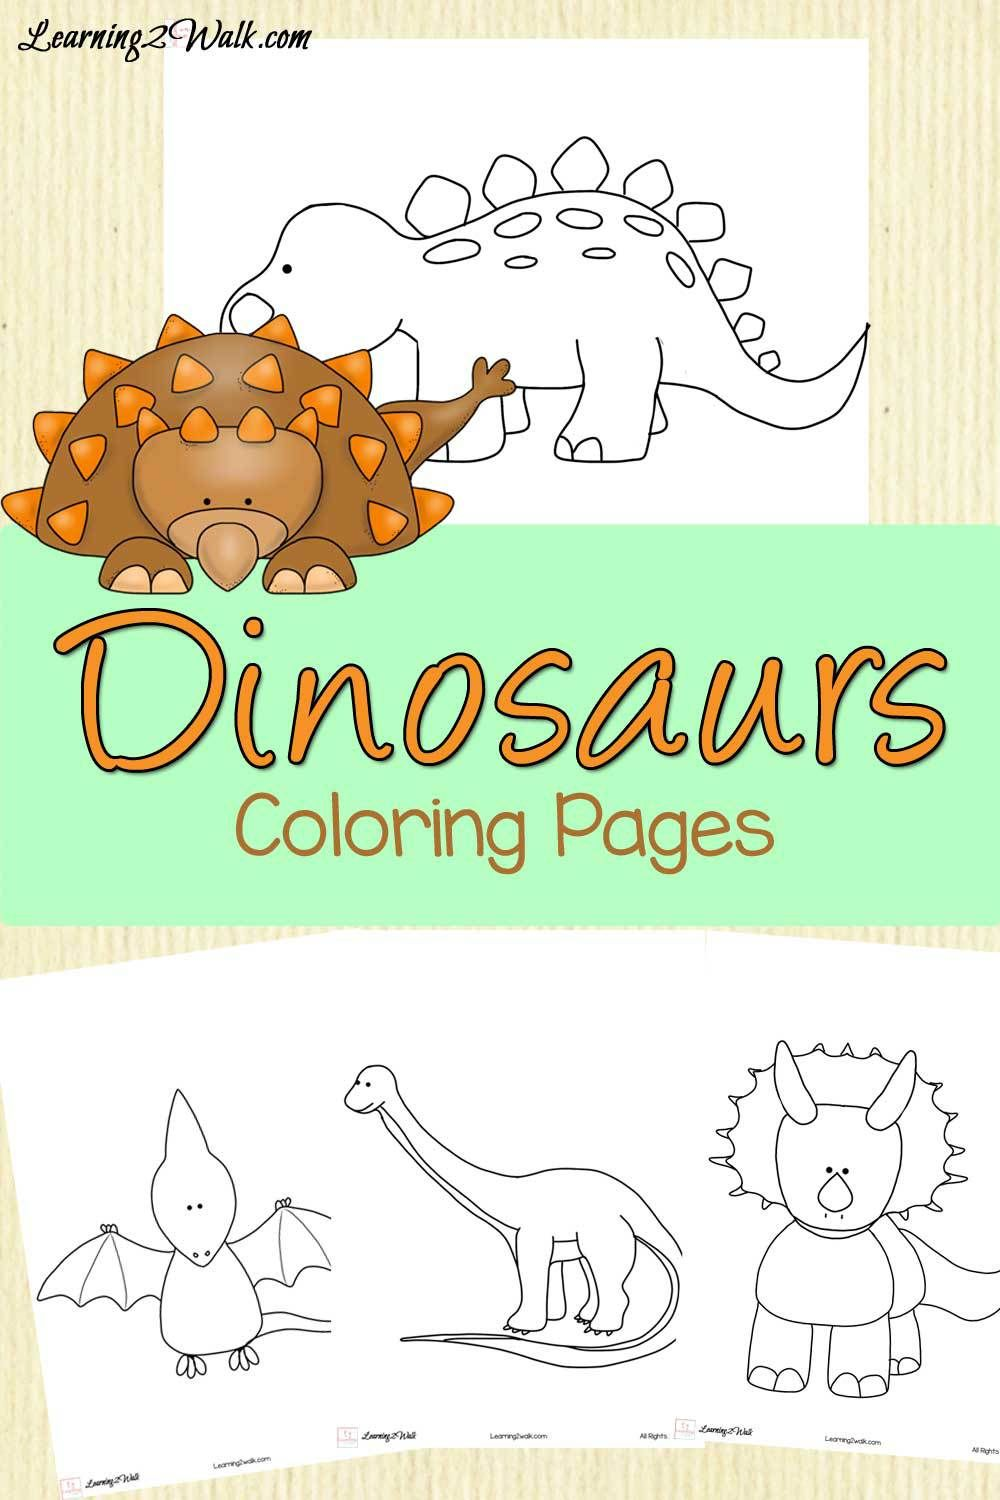 Dinosaurs Coloring Pages | Free, Preschool dinosaur and Homeschool